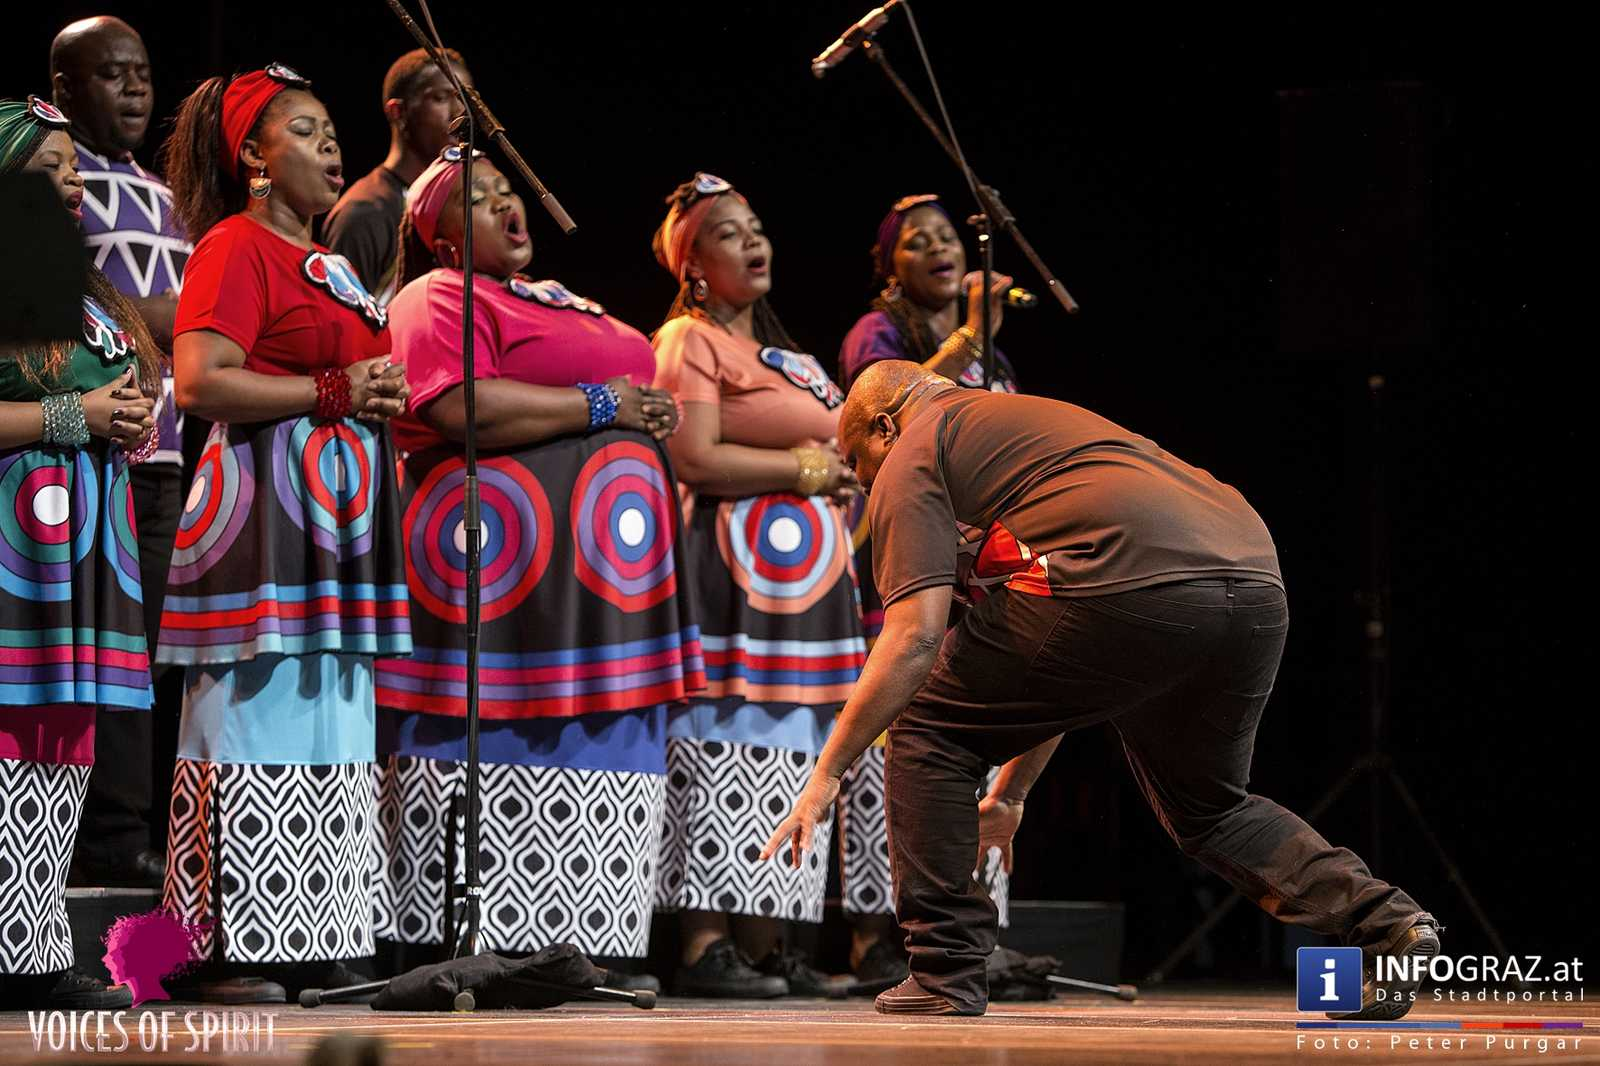 soweto gospel choir internationales chorfestival statdthalle graz voices of spirit eroeffnung festivals 2016 032